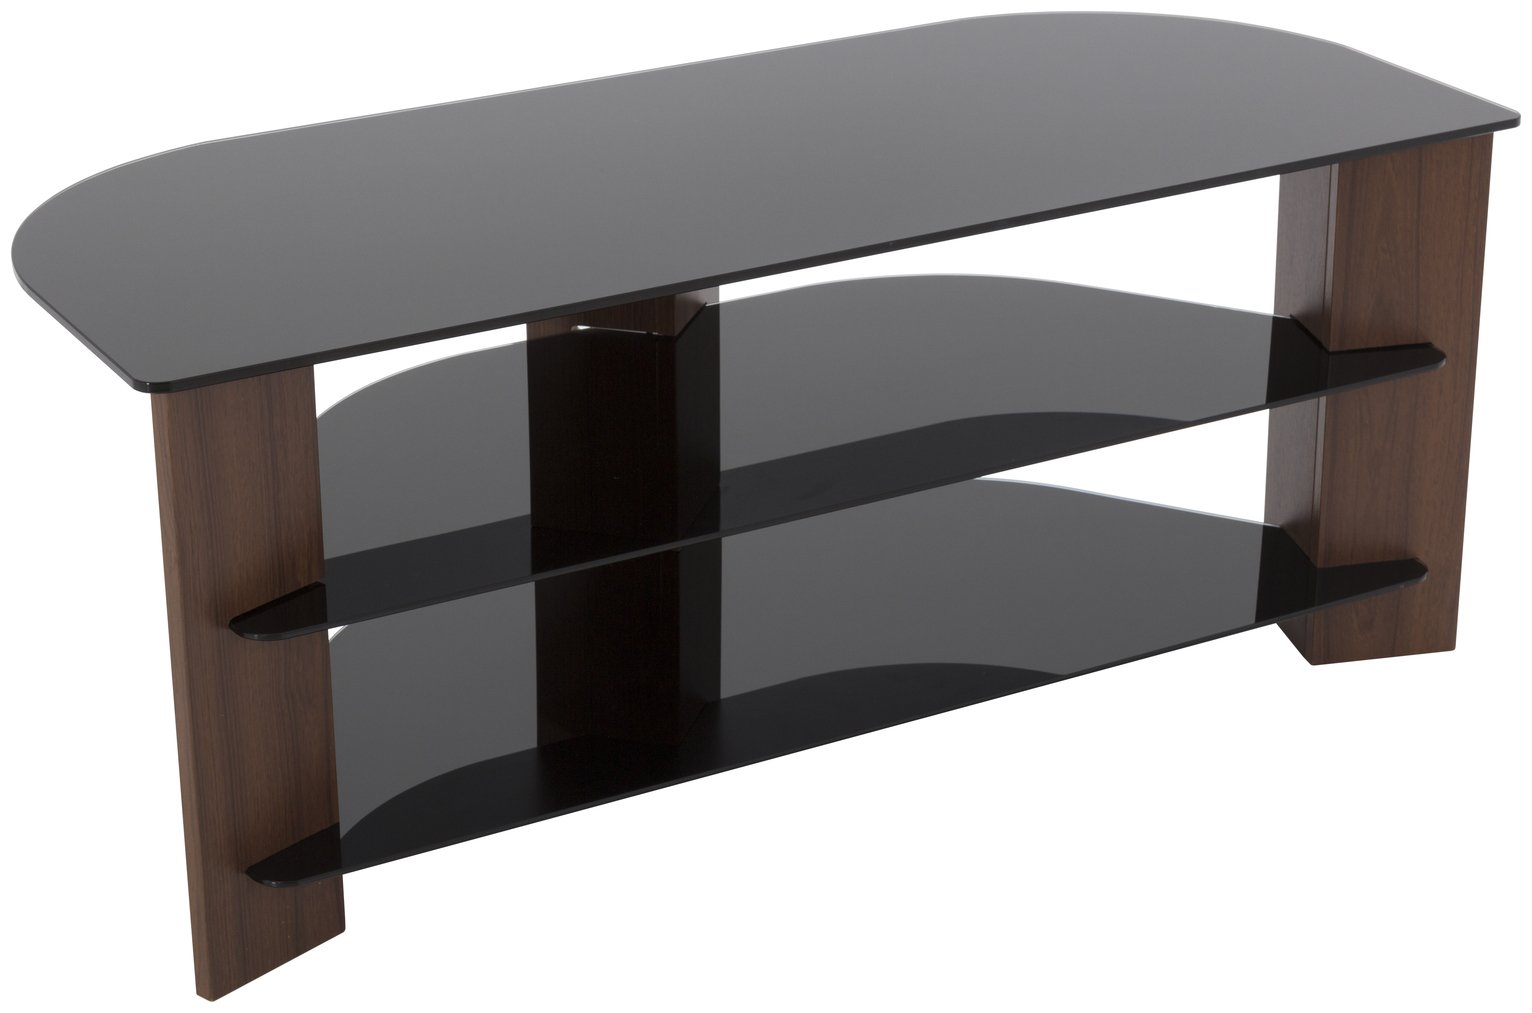 walnut and black glass 55 inch tv stand